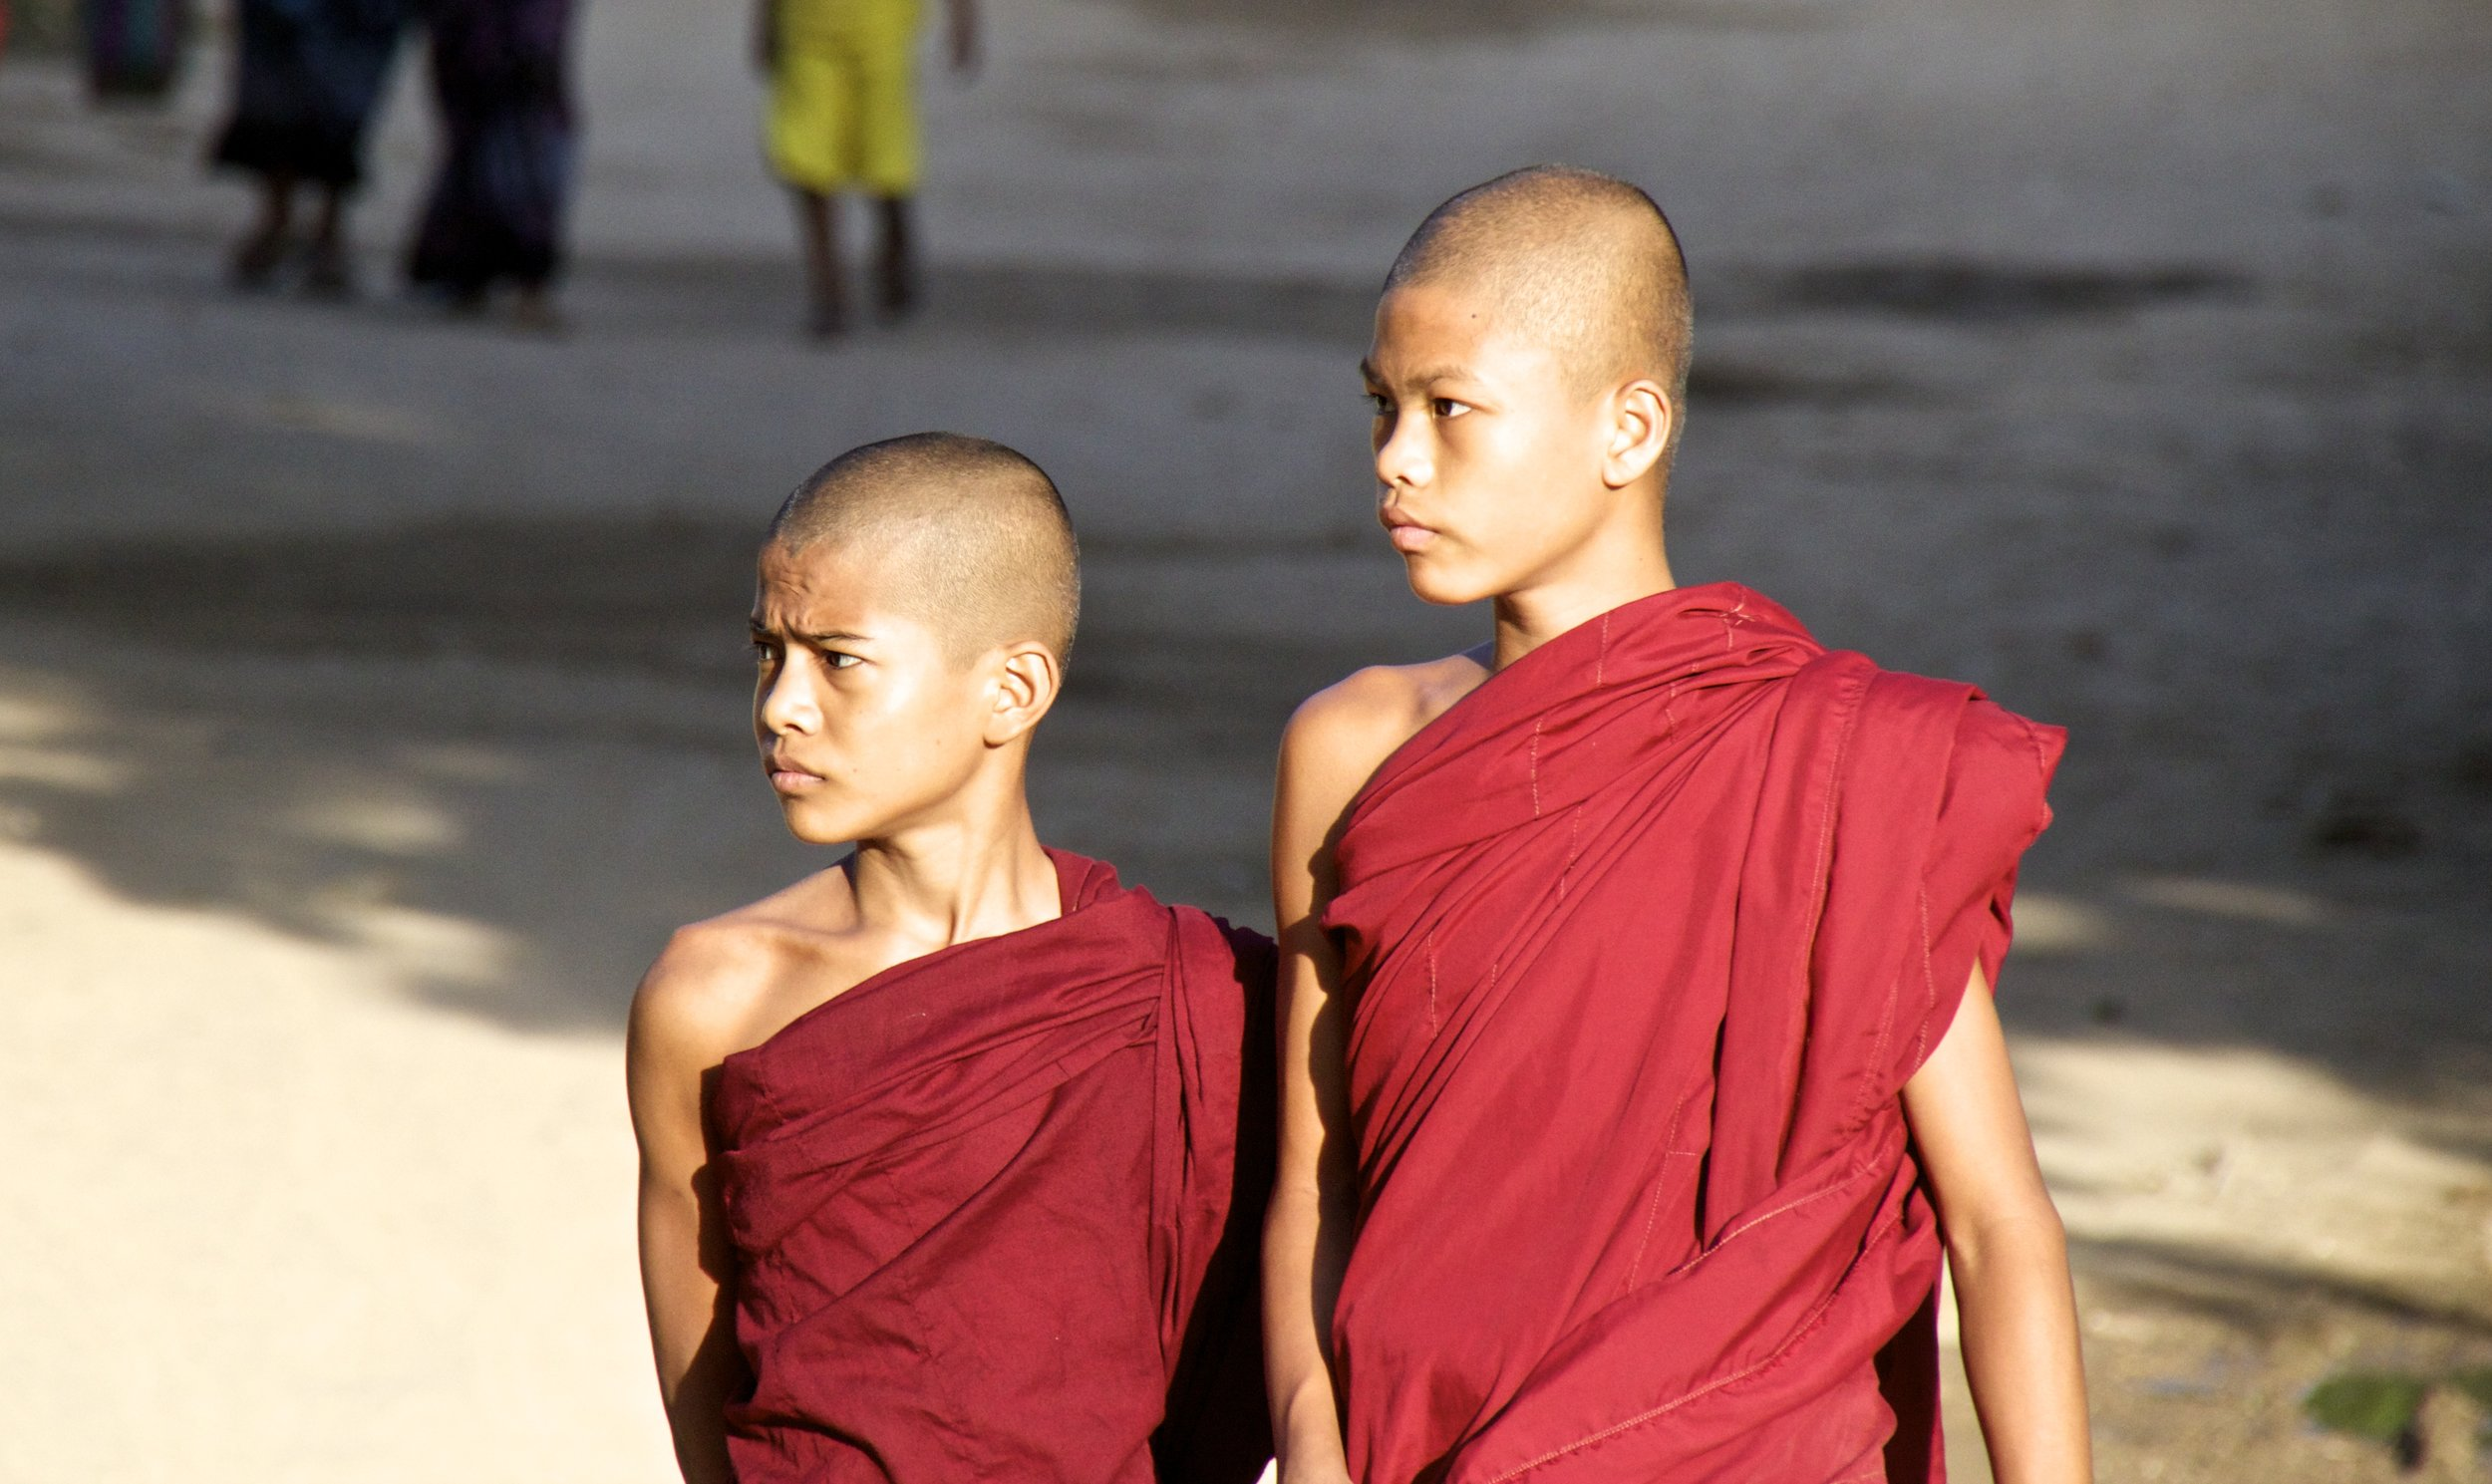 bagan burma myanmar buddhist monks alms 5.jpg